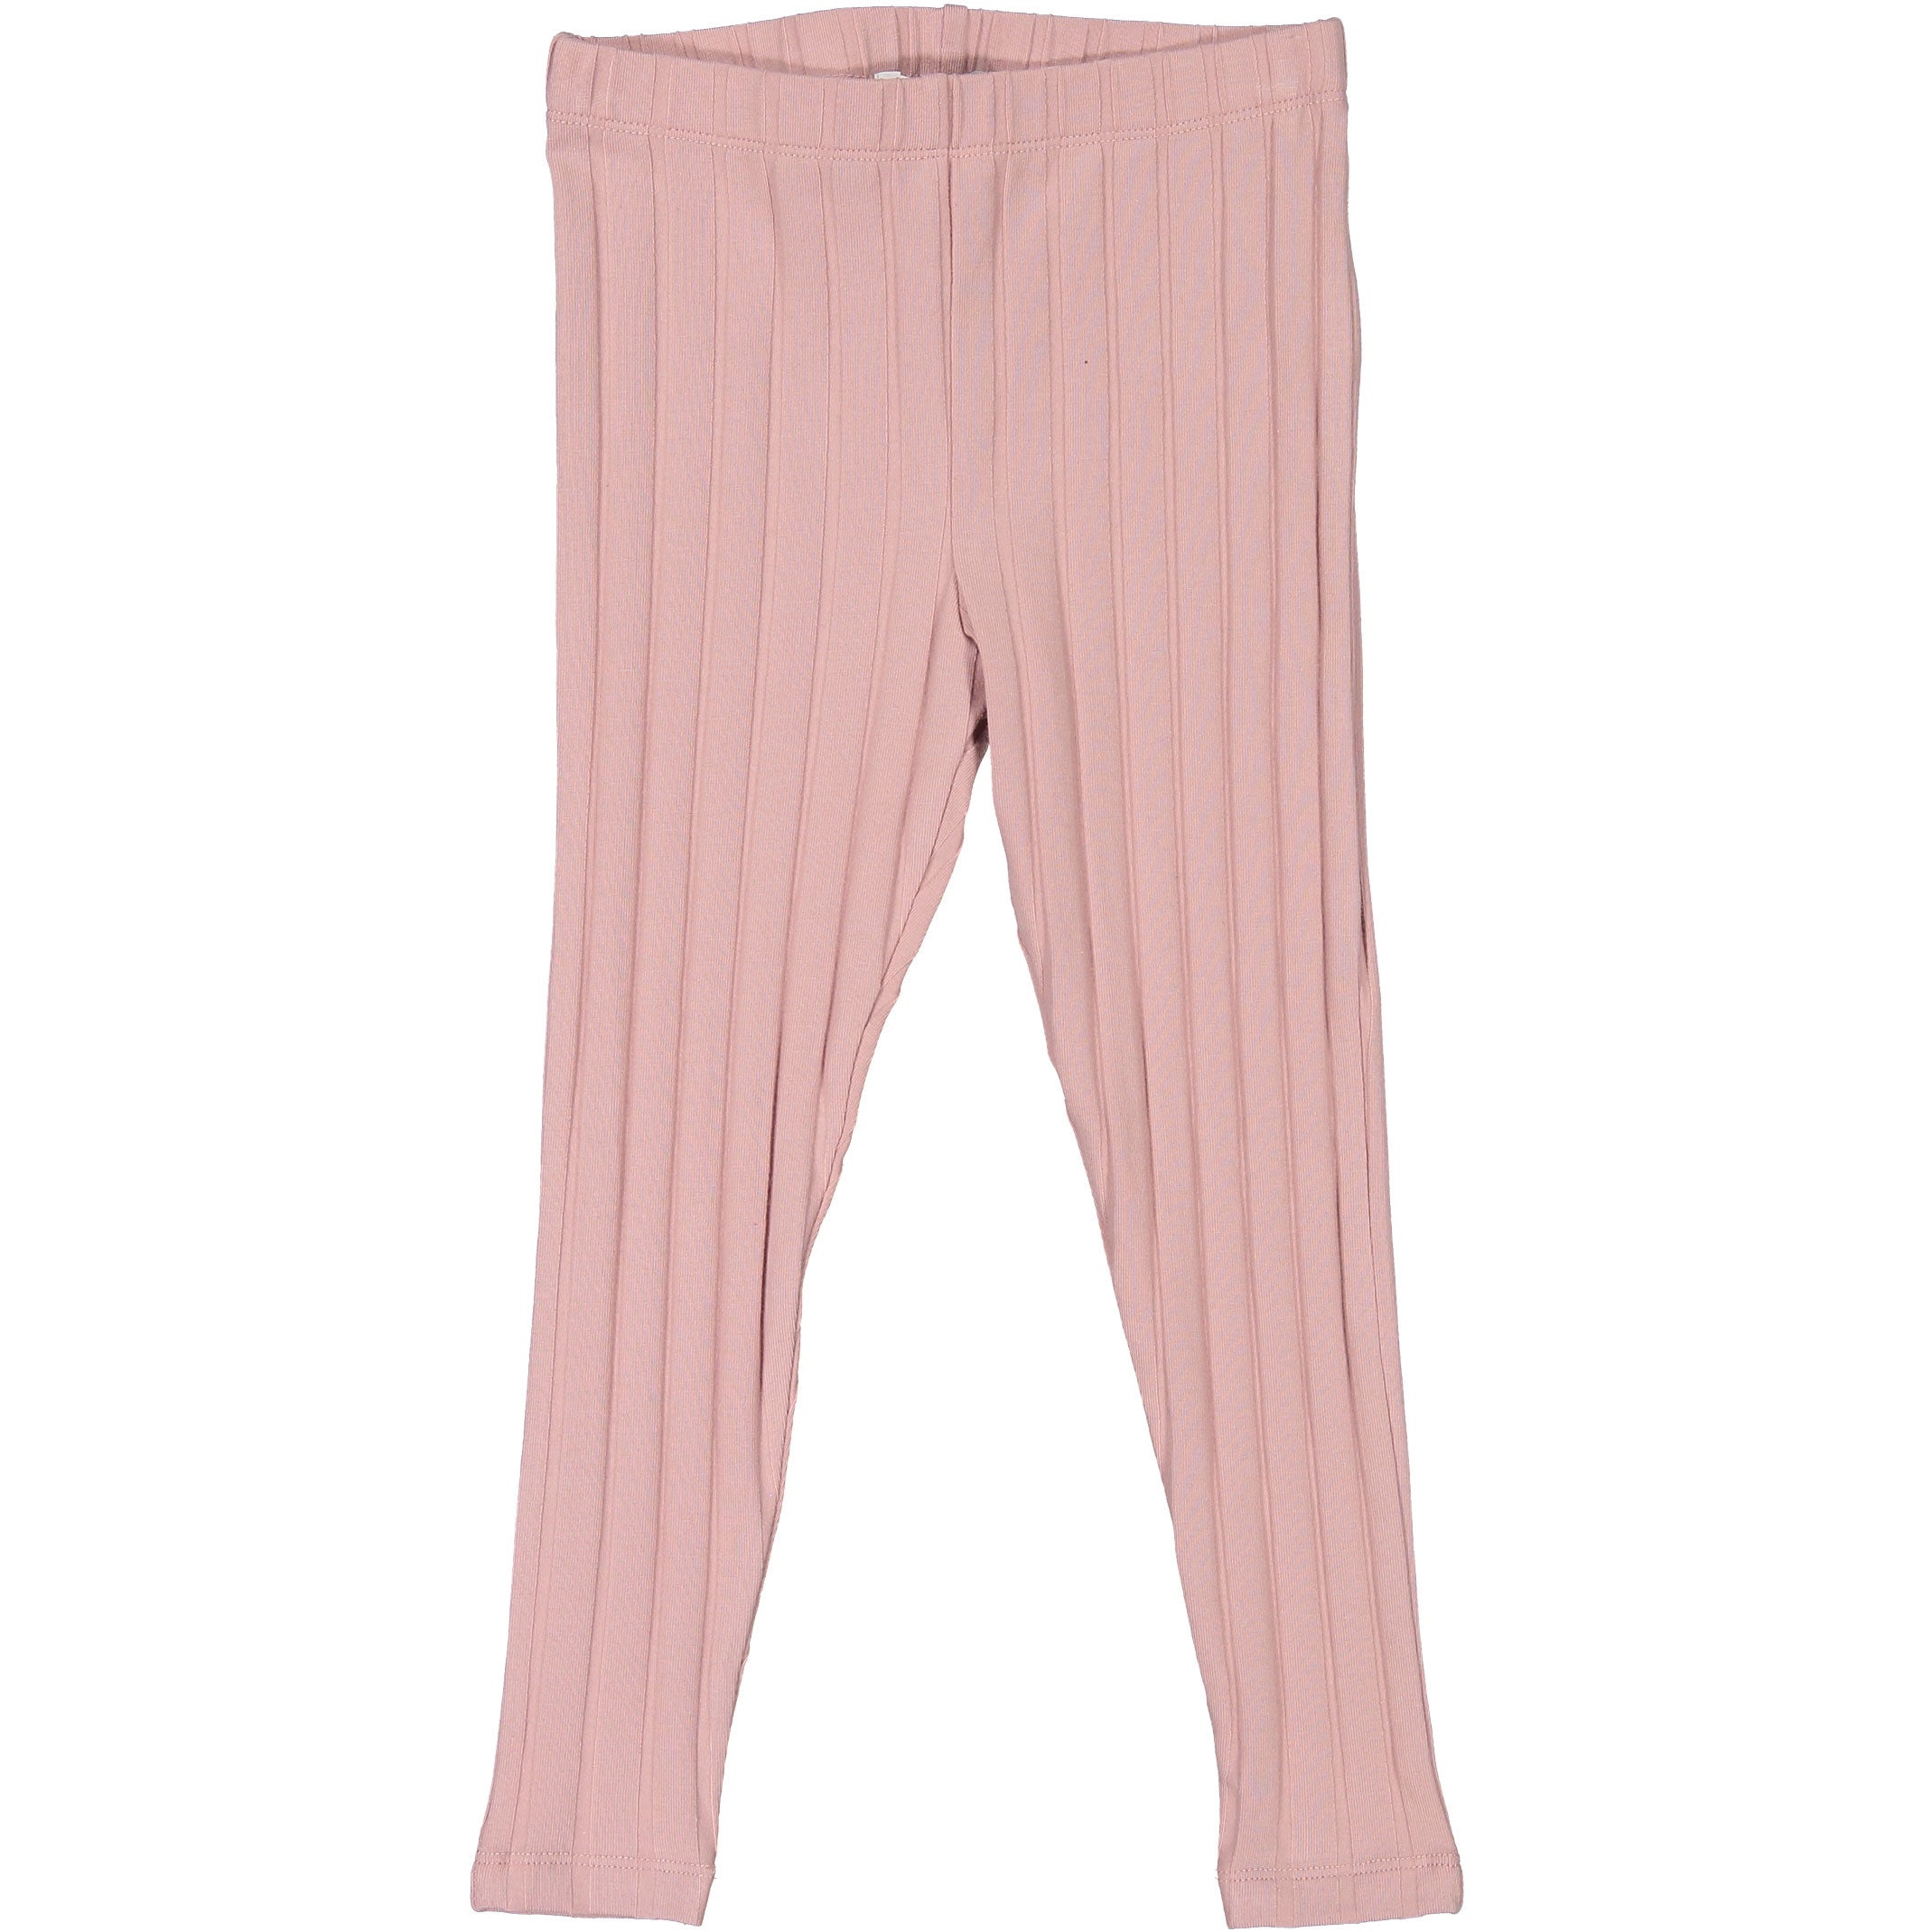 Coco Blanc Dusty Pink Wide Ribbed Pajamas